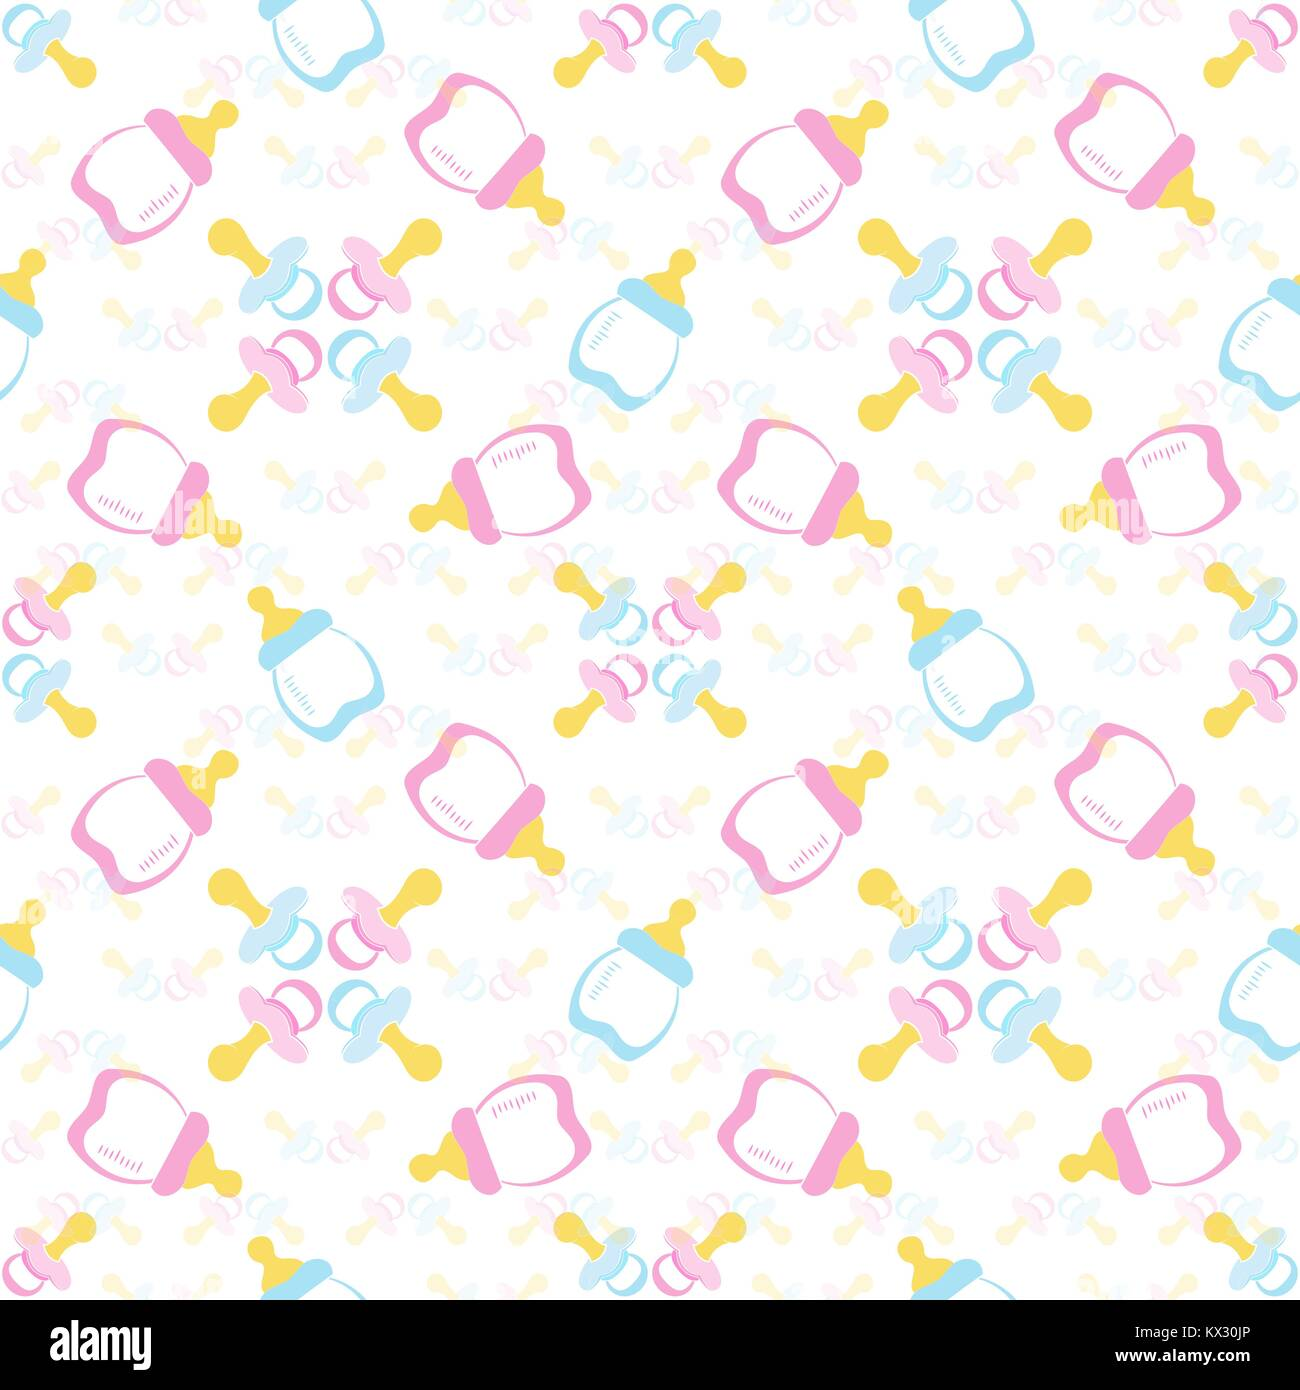 Baby bottle and Baby's dummy. Comforter seamless pattern background. Kids seamless pattern. EPS 10 - Stock Vector